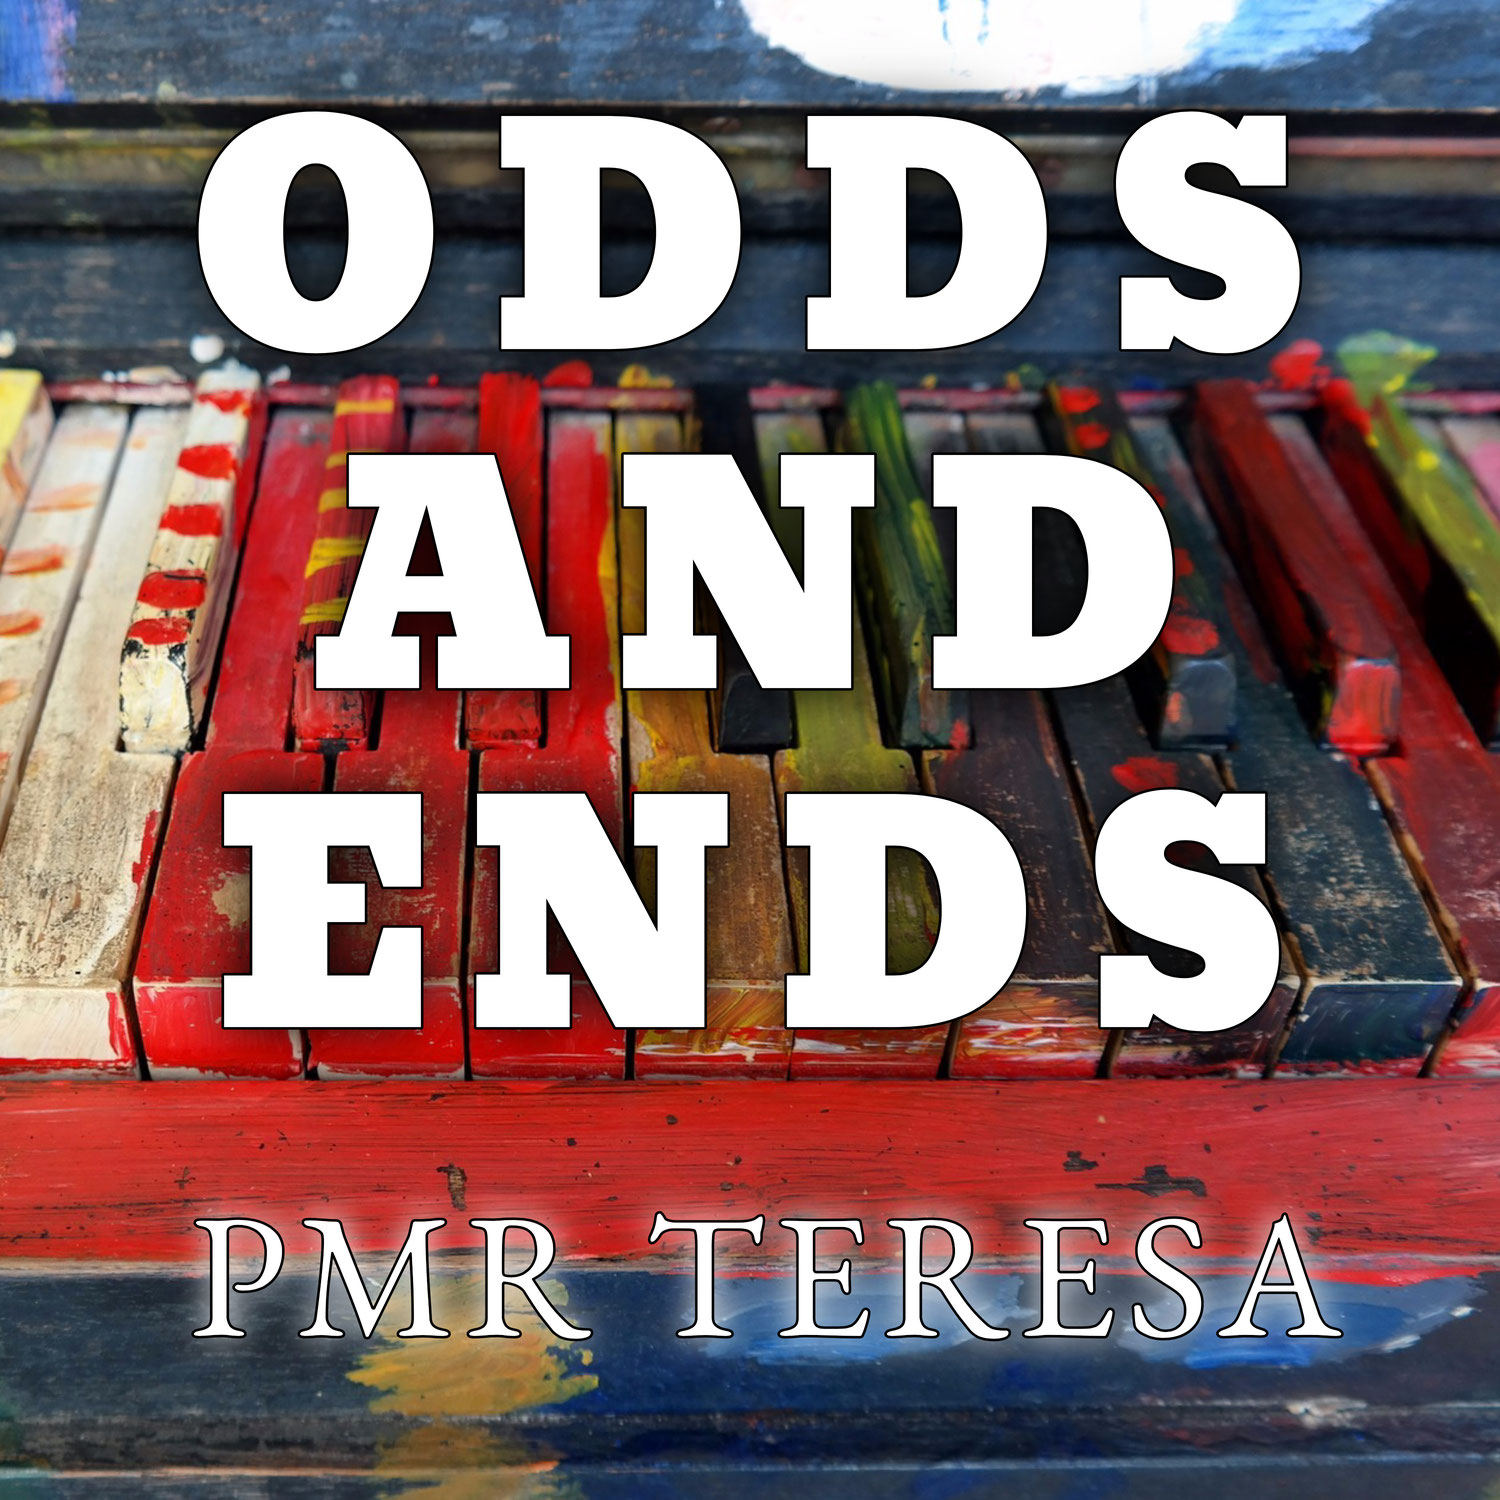 PMR pell-mell rush - Odds and ends のメイキング映像UPしました。